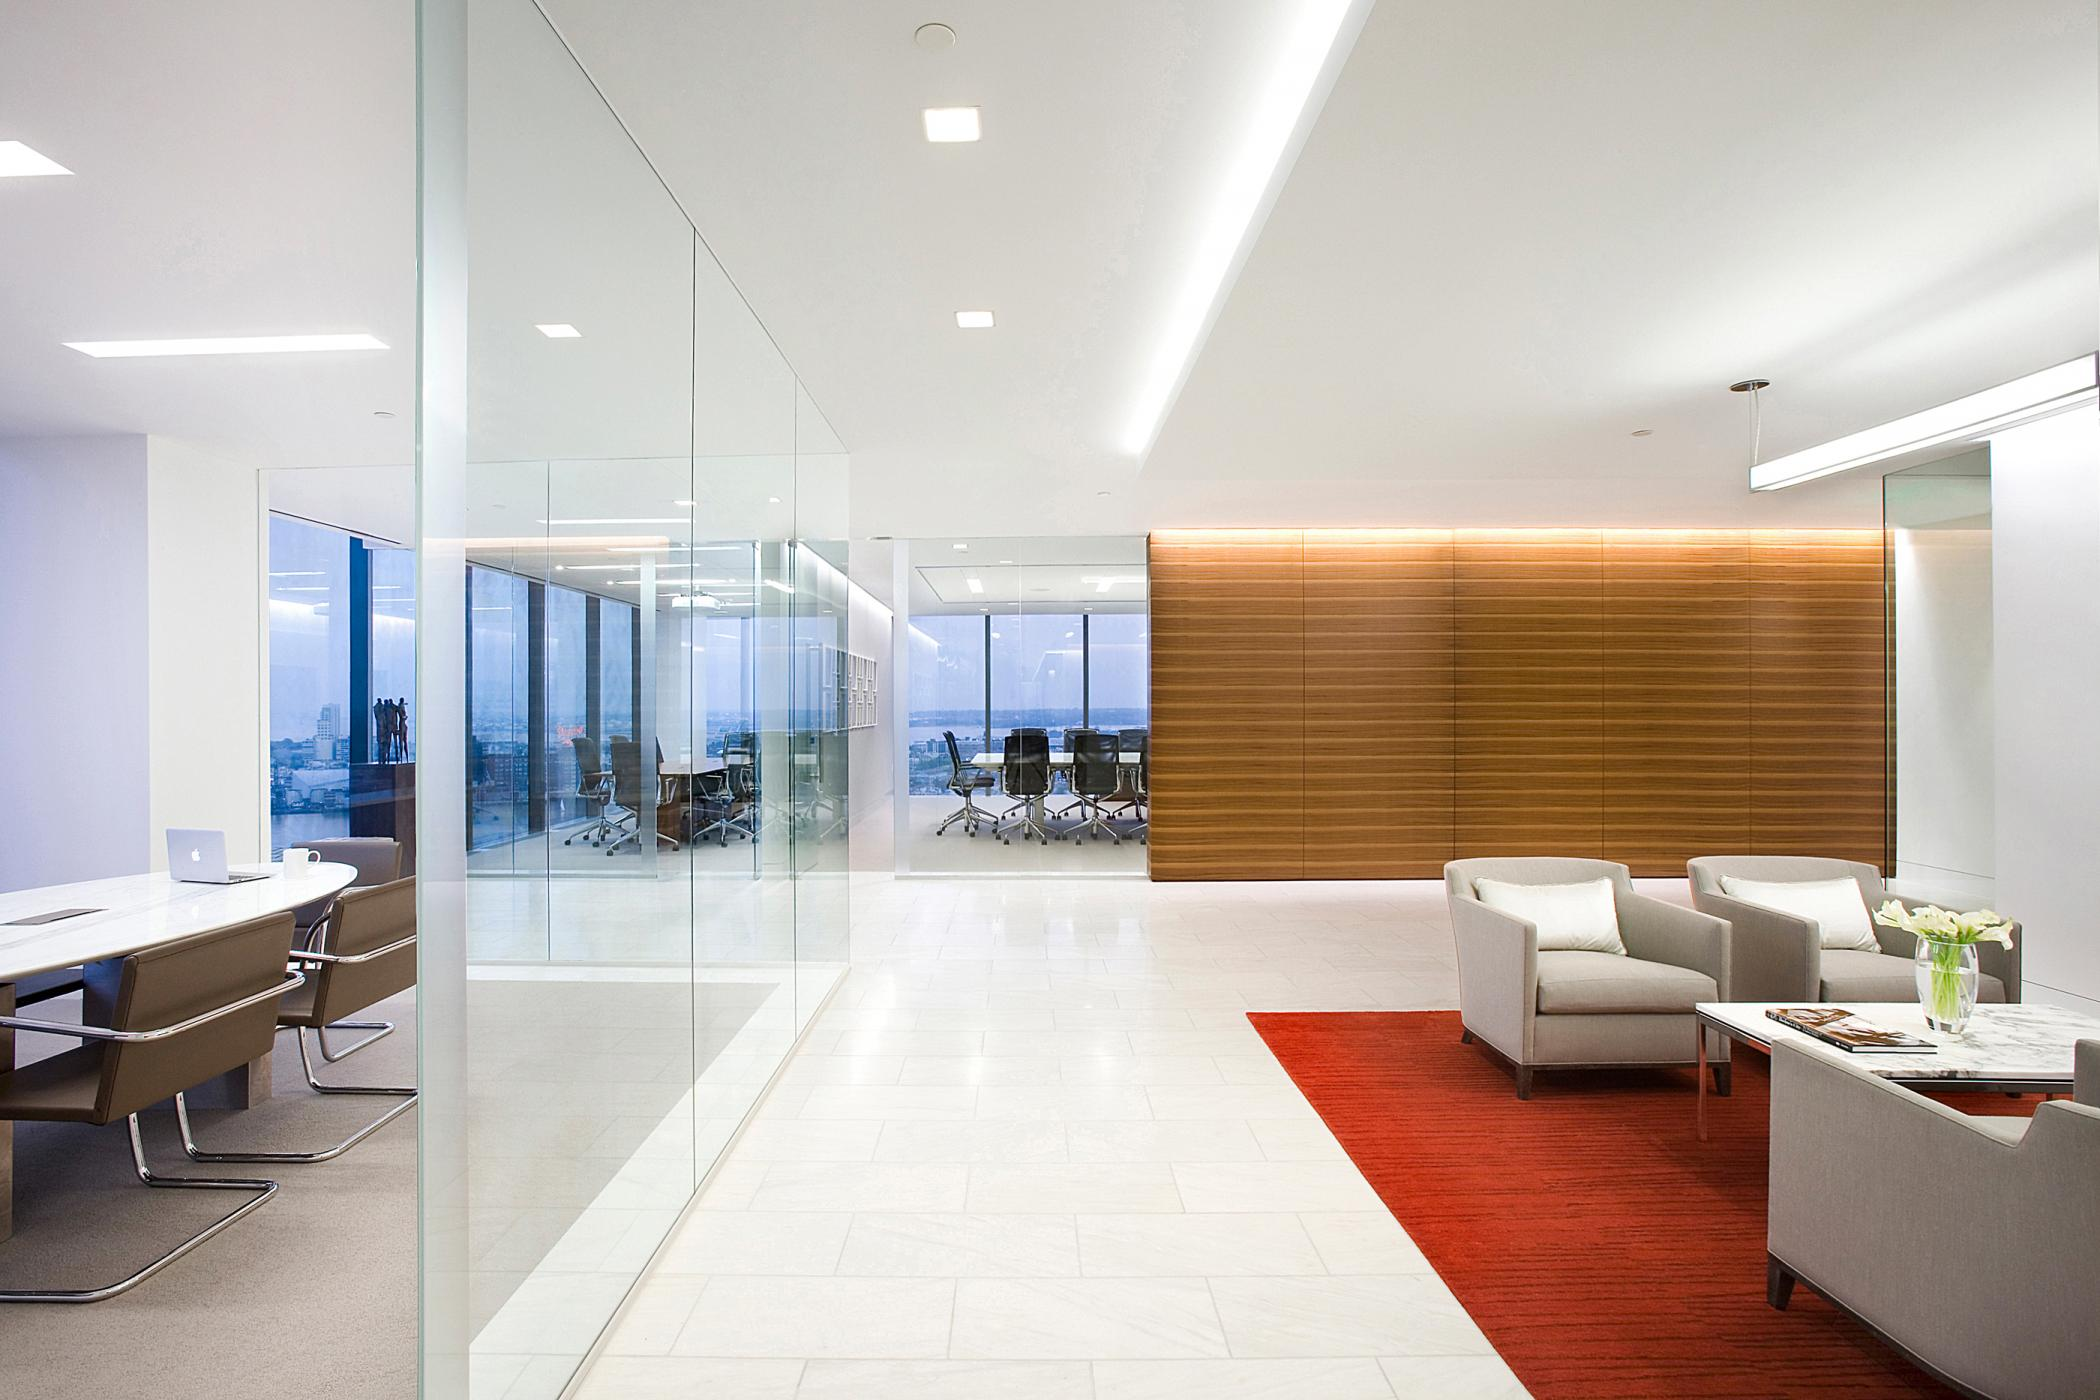 Three conference tables of varying shapes, materials, and design are visible from the lobby.